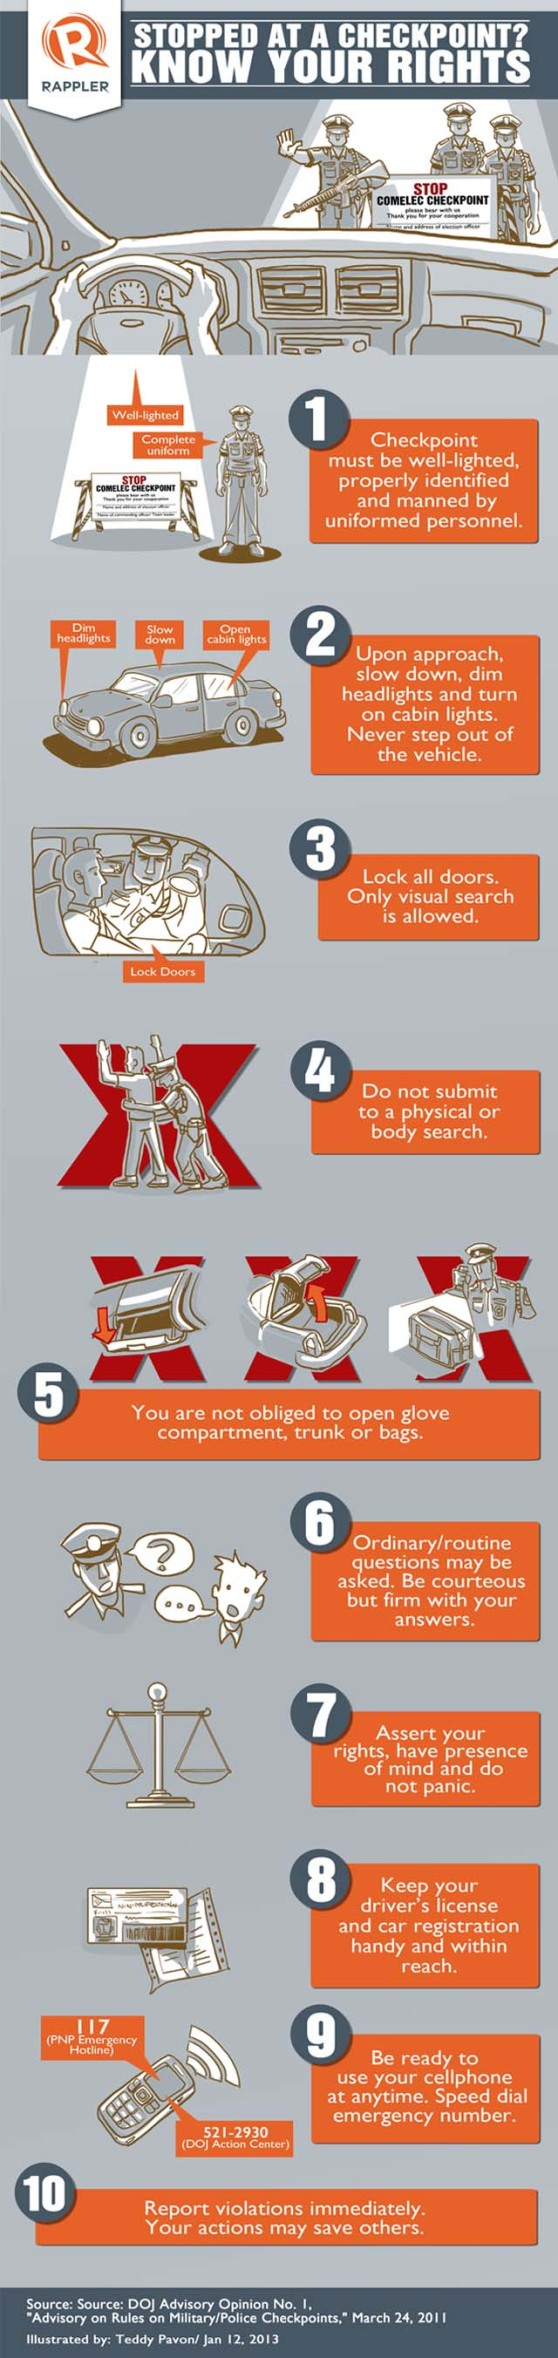 Stopped at a checkpoint? Know your rights